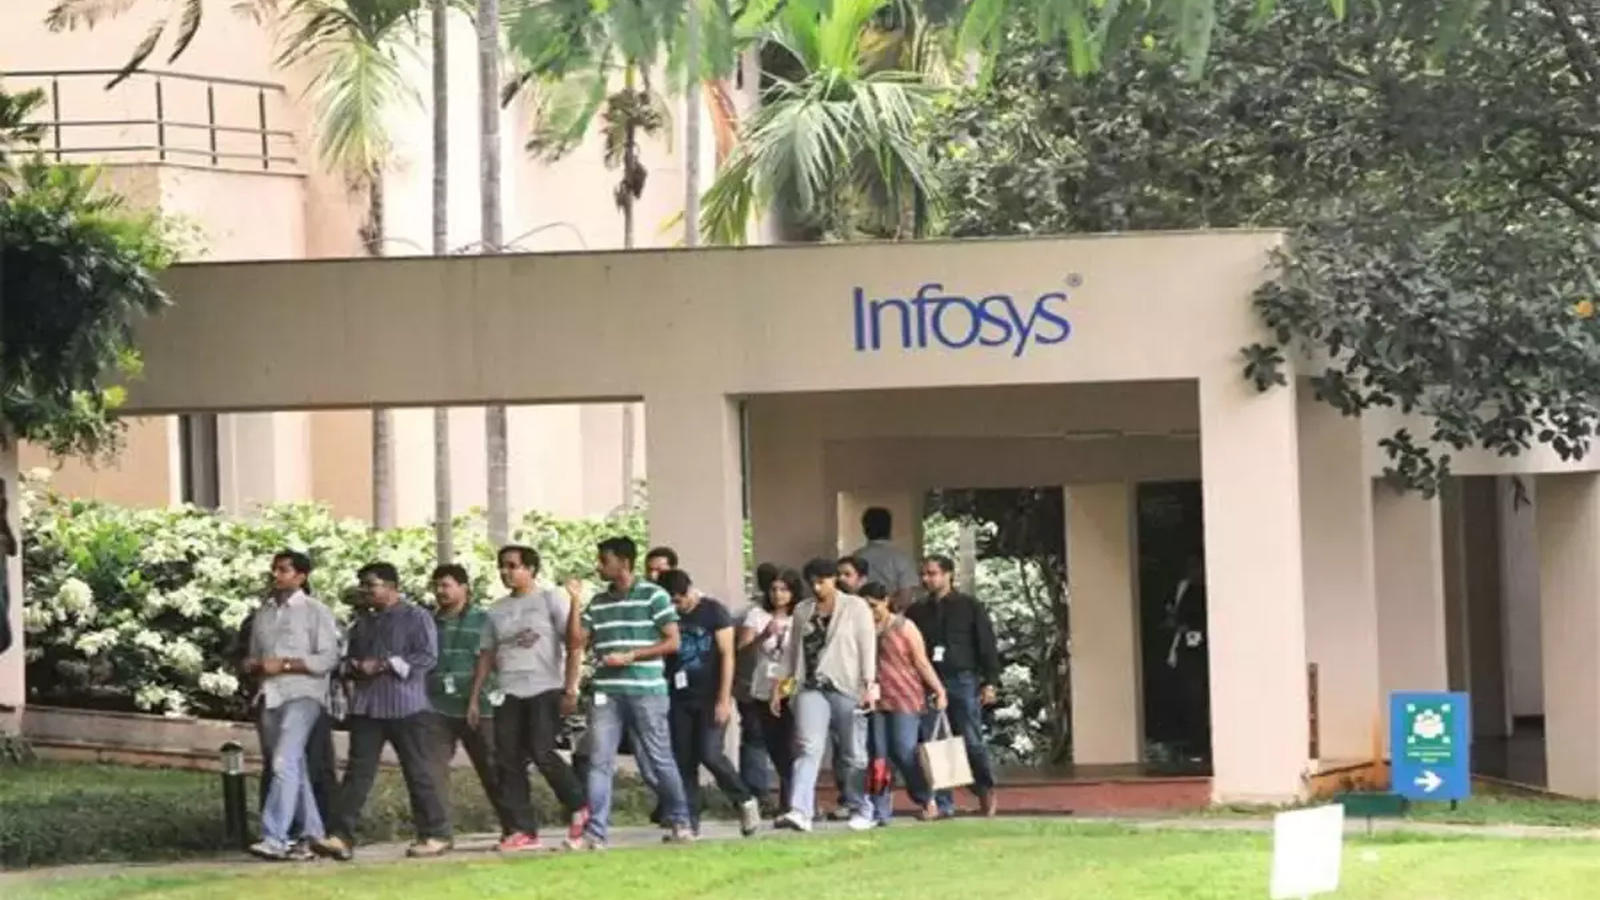 infosys-data-and-analytics-business-grows-into-3-billion